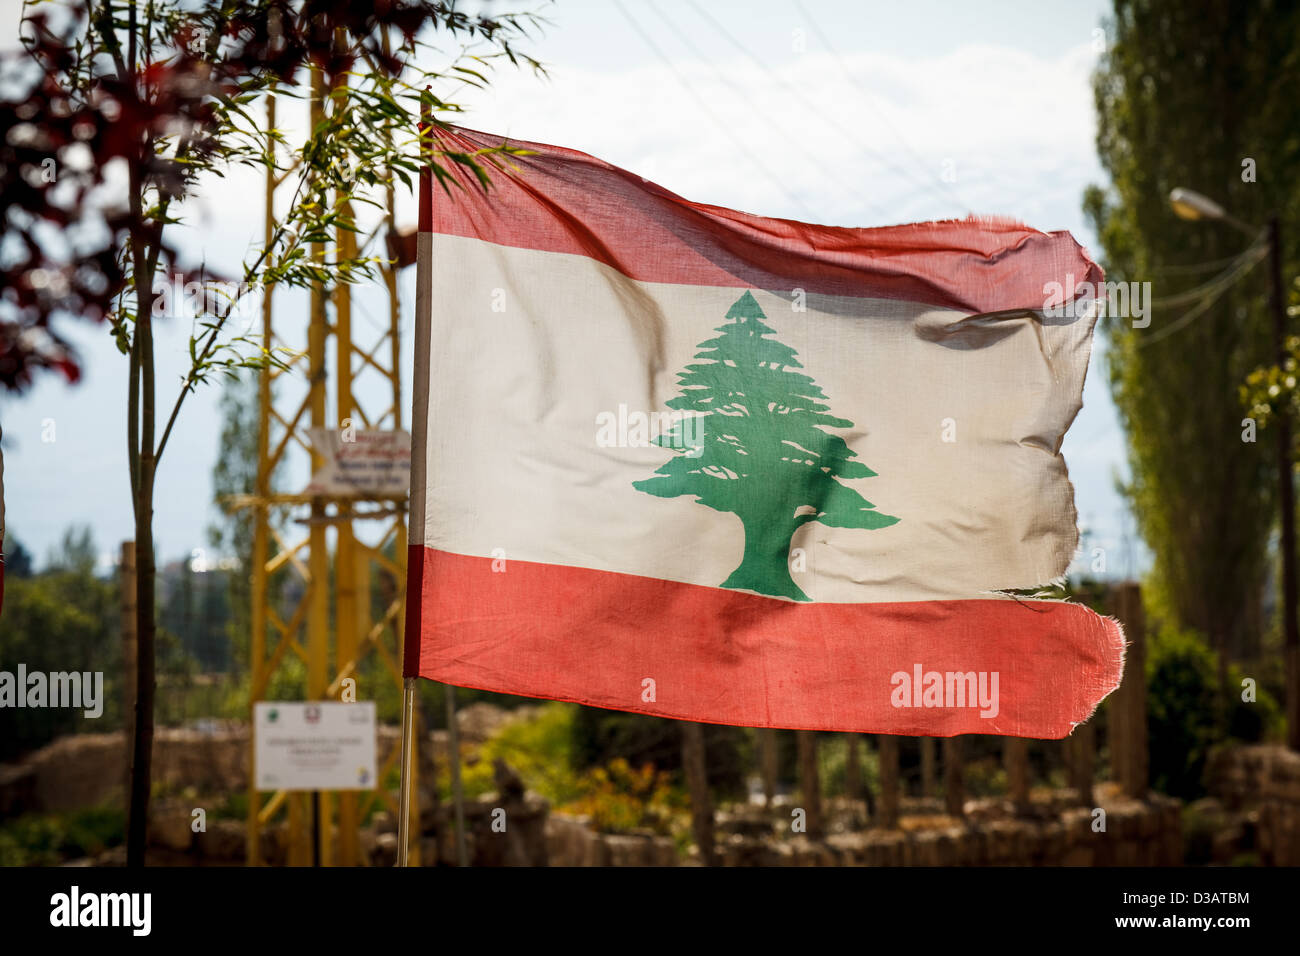 Tattered Lebanese flag floating in the wind in the Hezbollah controlled Beqaa Valley. - Stock Image